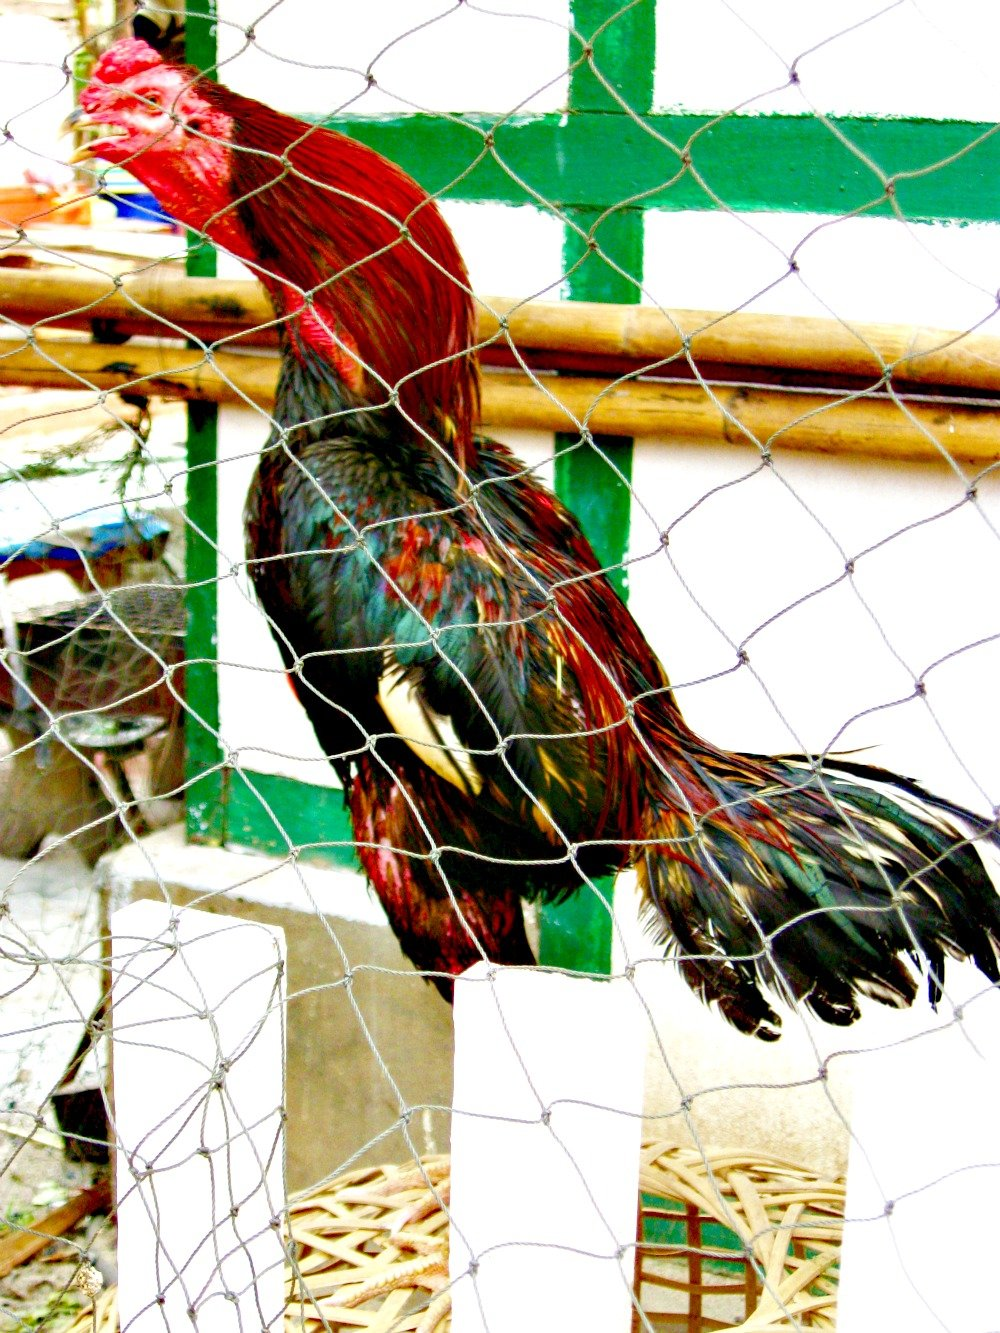 A rooster crowing in Luang Prabang.